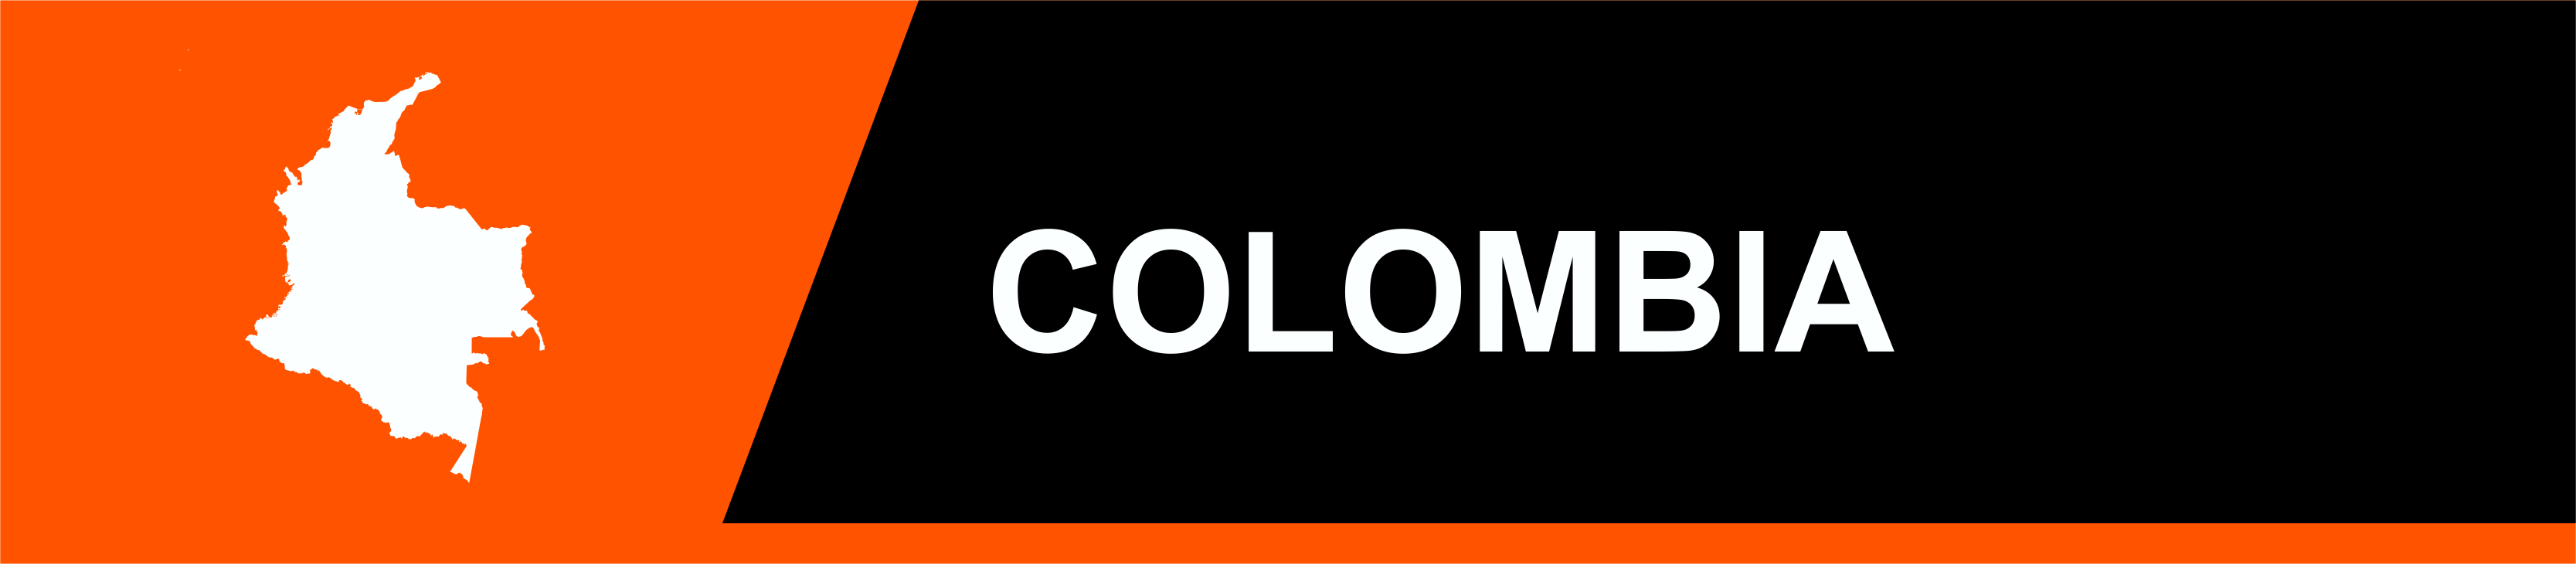 BANNER-TITULO-COLOMBIA